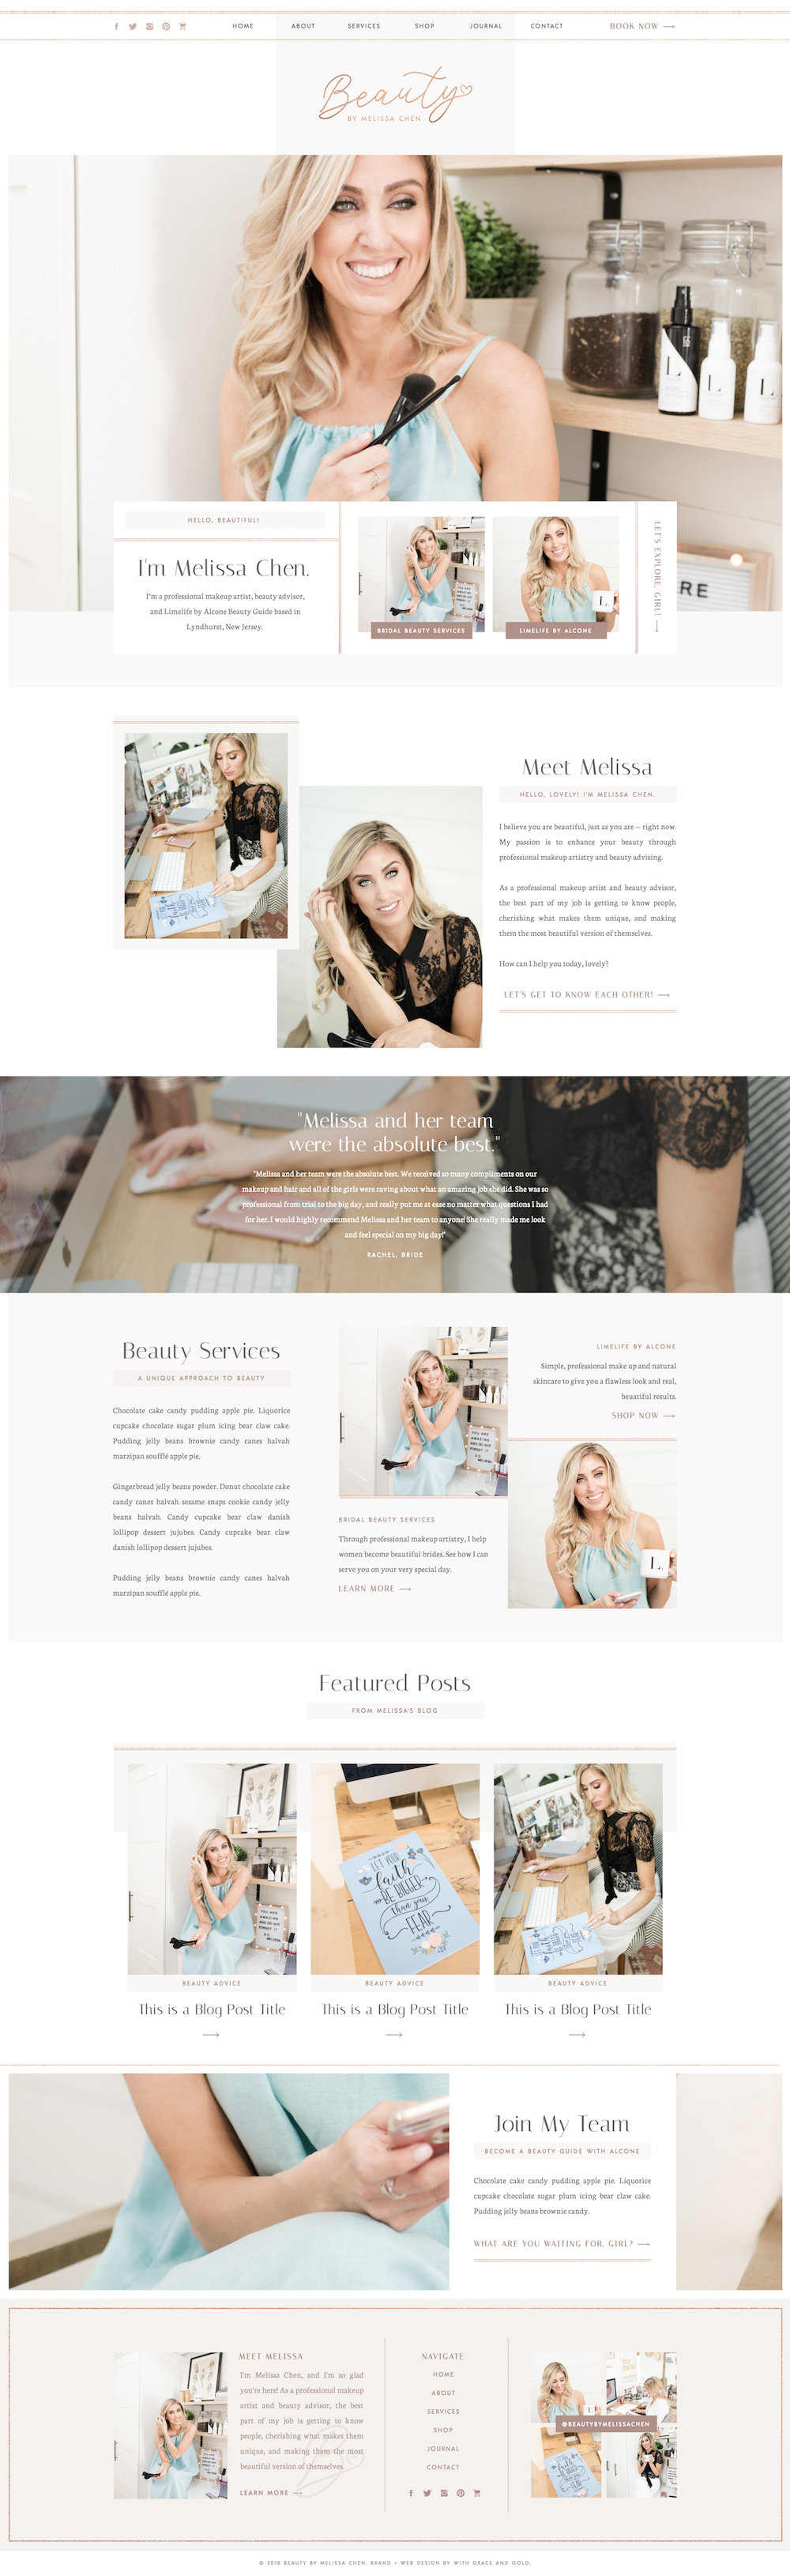 Custom Web Design For Beauty By Melissa Chen With Grace And Gold Web Website Websites Design Web Design Tips Web Layout Design Beautiful Website Design